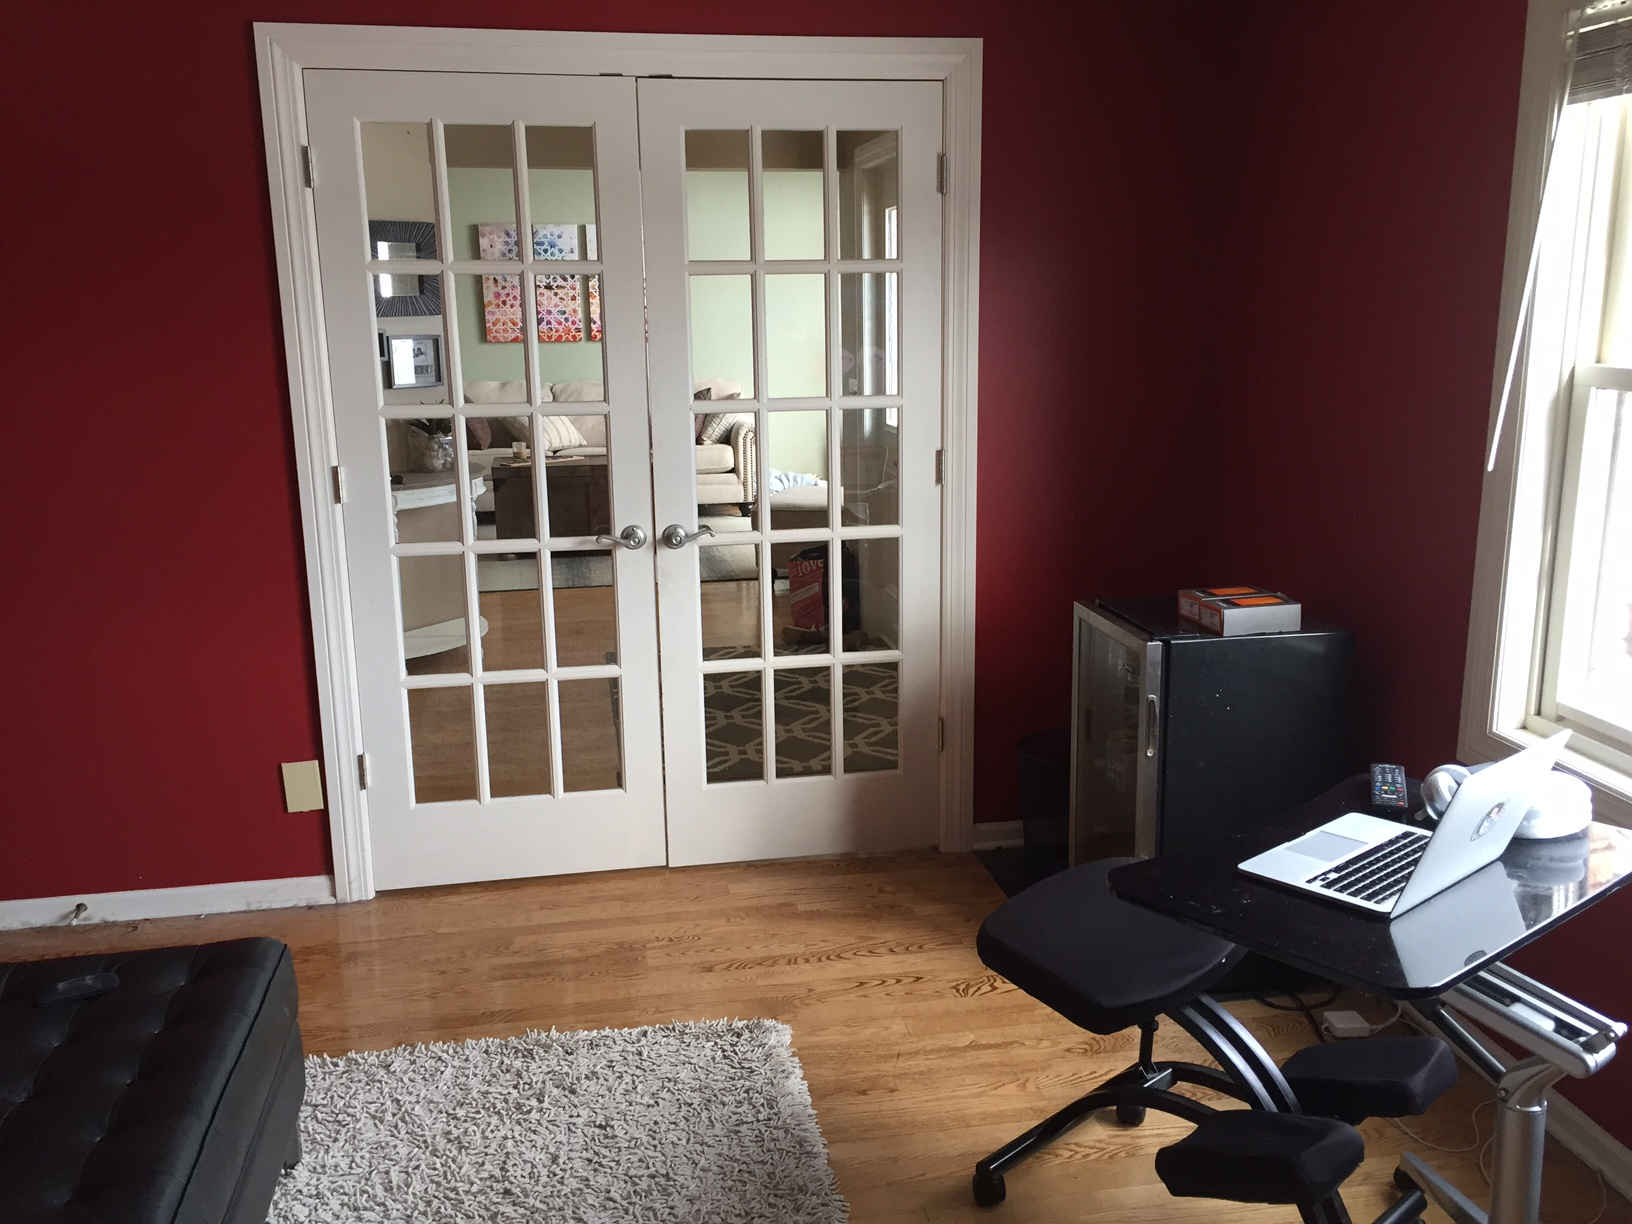 design my office. i love my office and don\u0027t have anything i\u0027m looking to add. was going  frame arsenal or real madrid signed jerseys on the walls but enjoy room\u0027s design